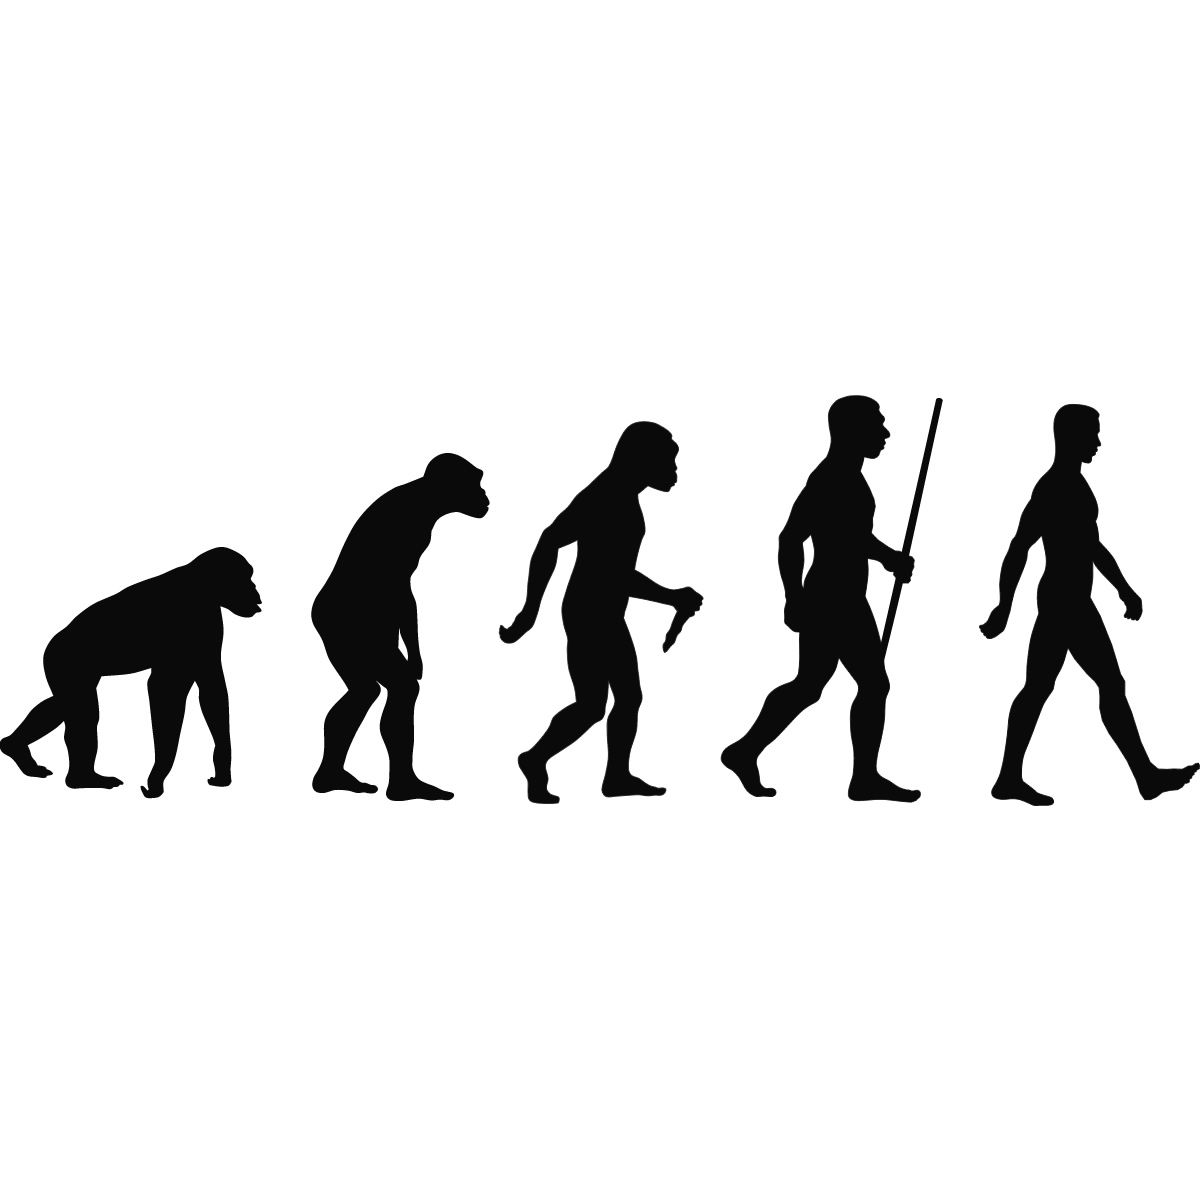 1200x1200 Evolution Of Man Sihouette Wall Art Stickers Wall Decal Transfers